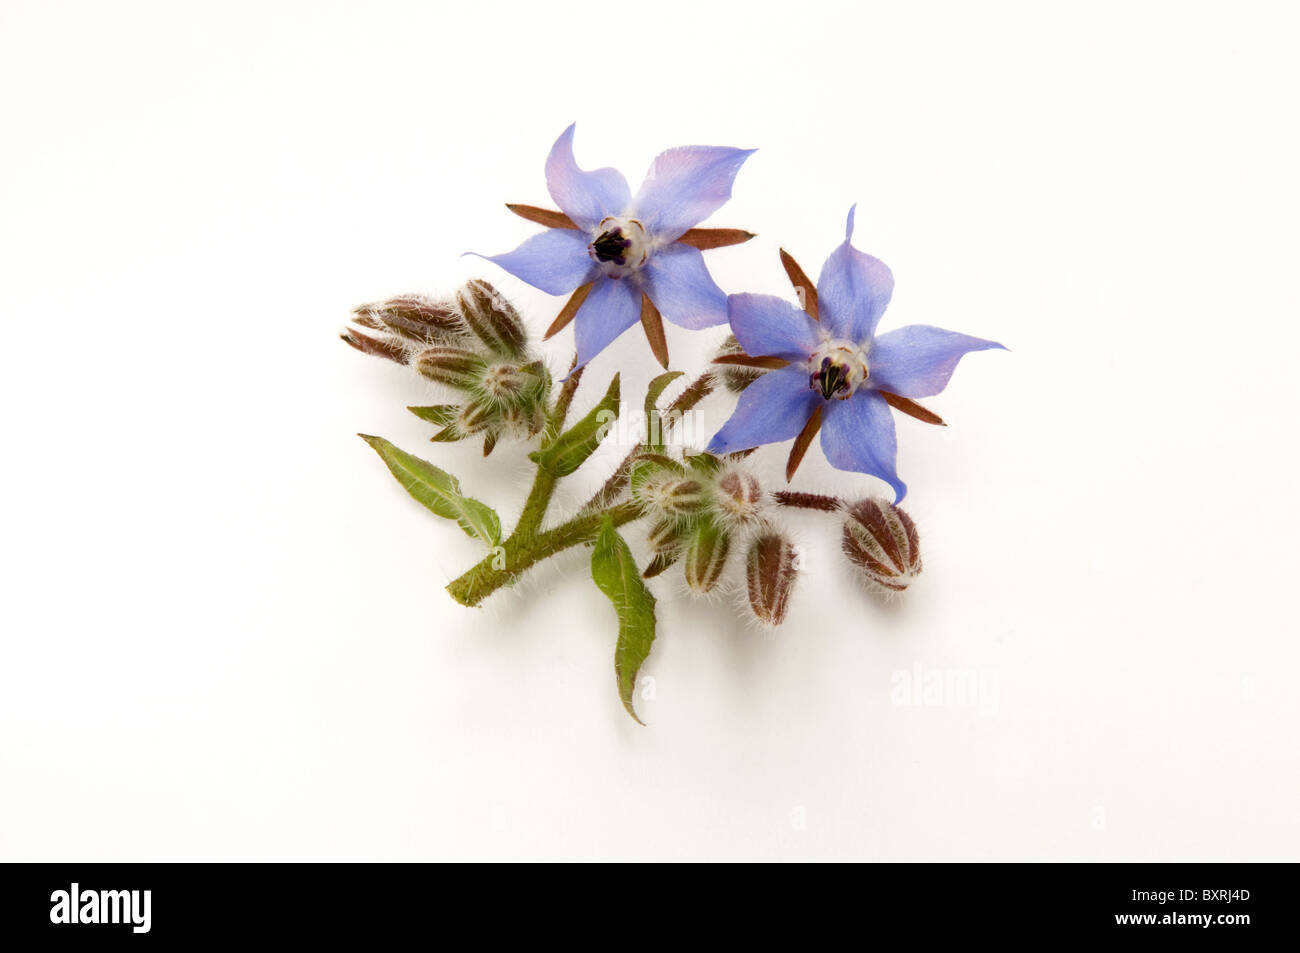 Borage flowers and buds on stem - Stock Image